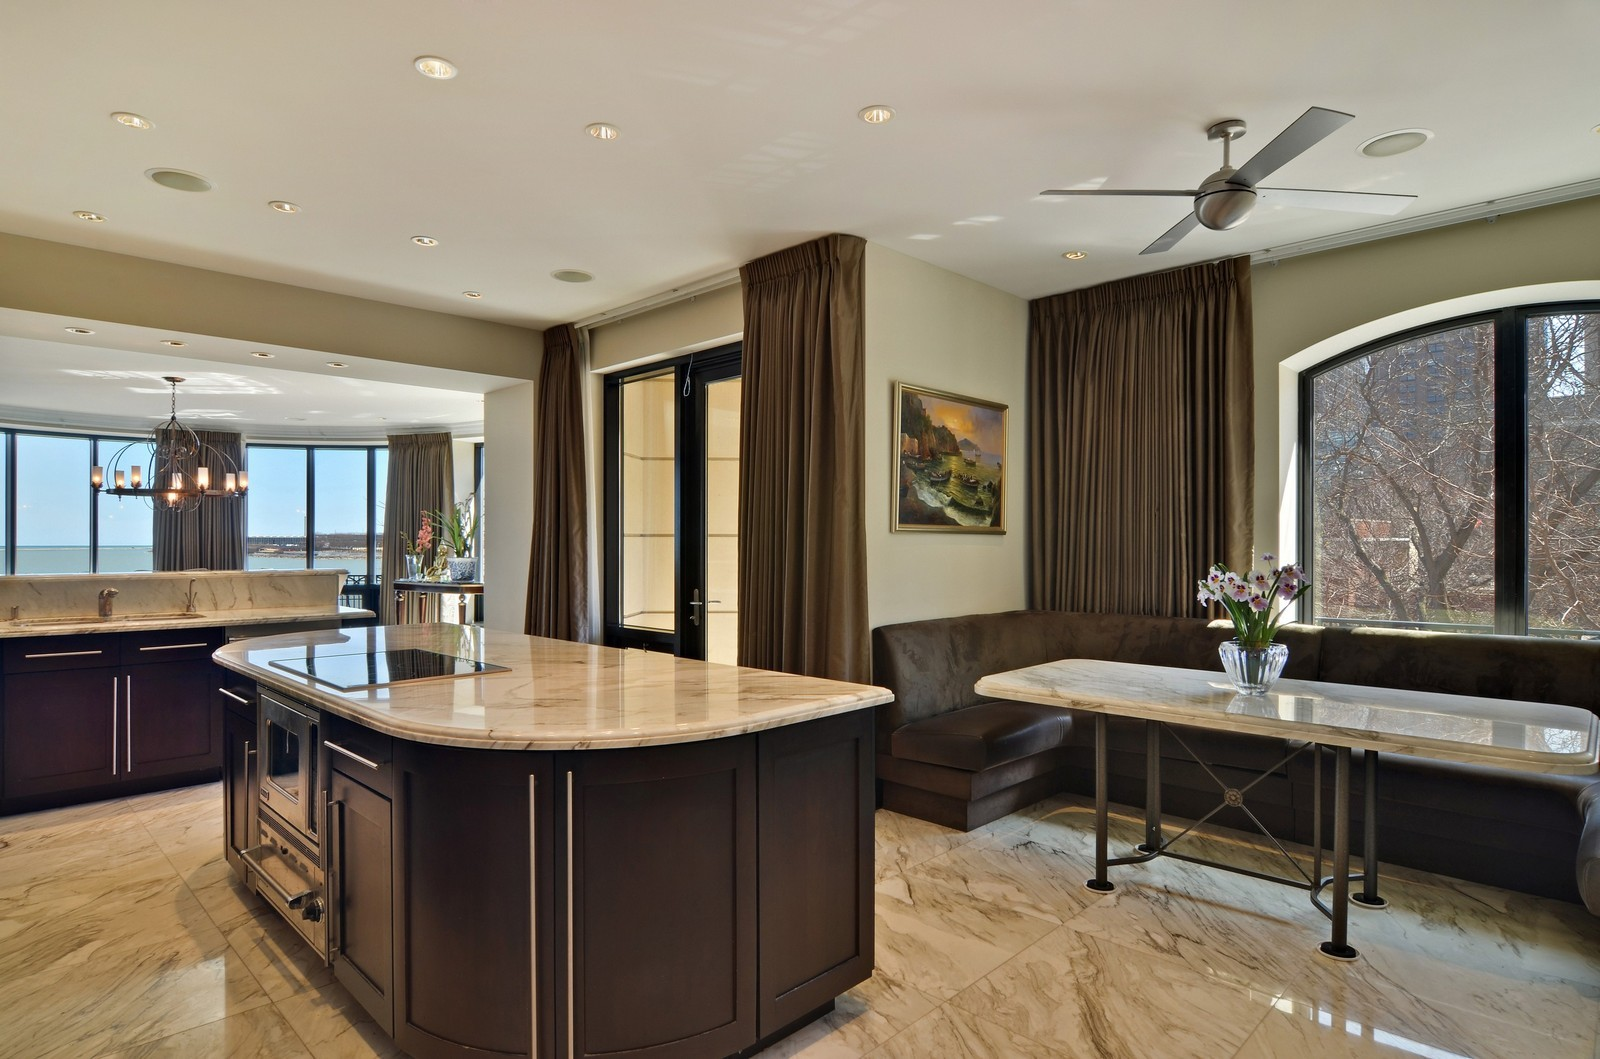 Real Estate Photography - 840 N Lake Shore Dr, Unit 201, Chicago, IL, 60611 - Kitchen / Breakfast Room